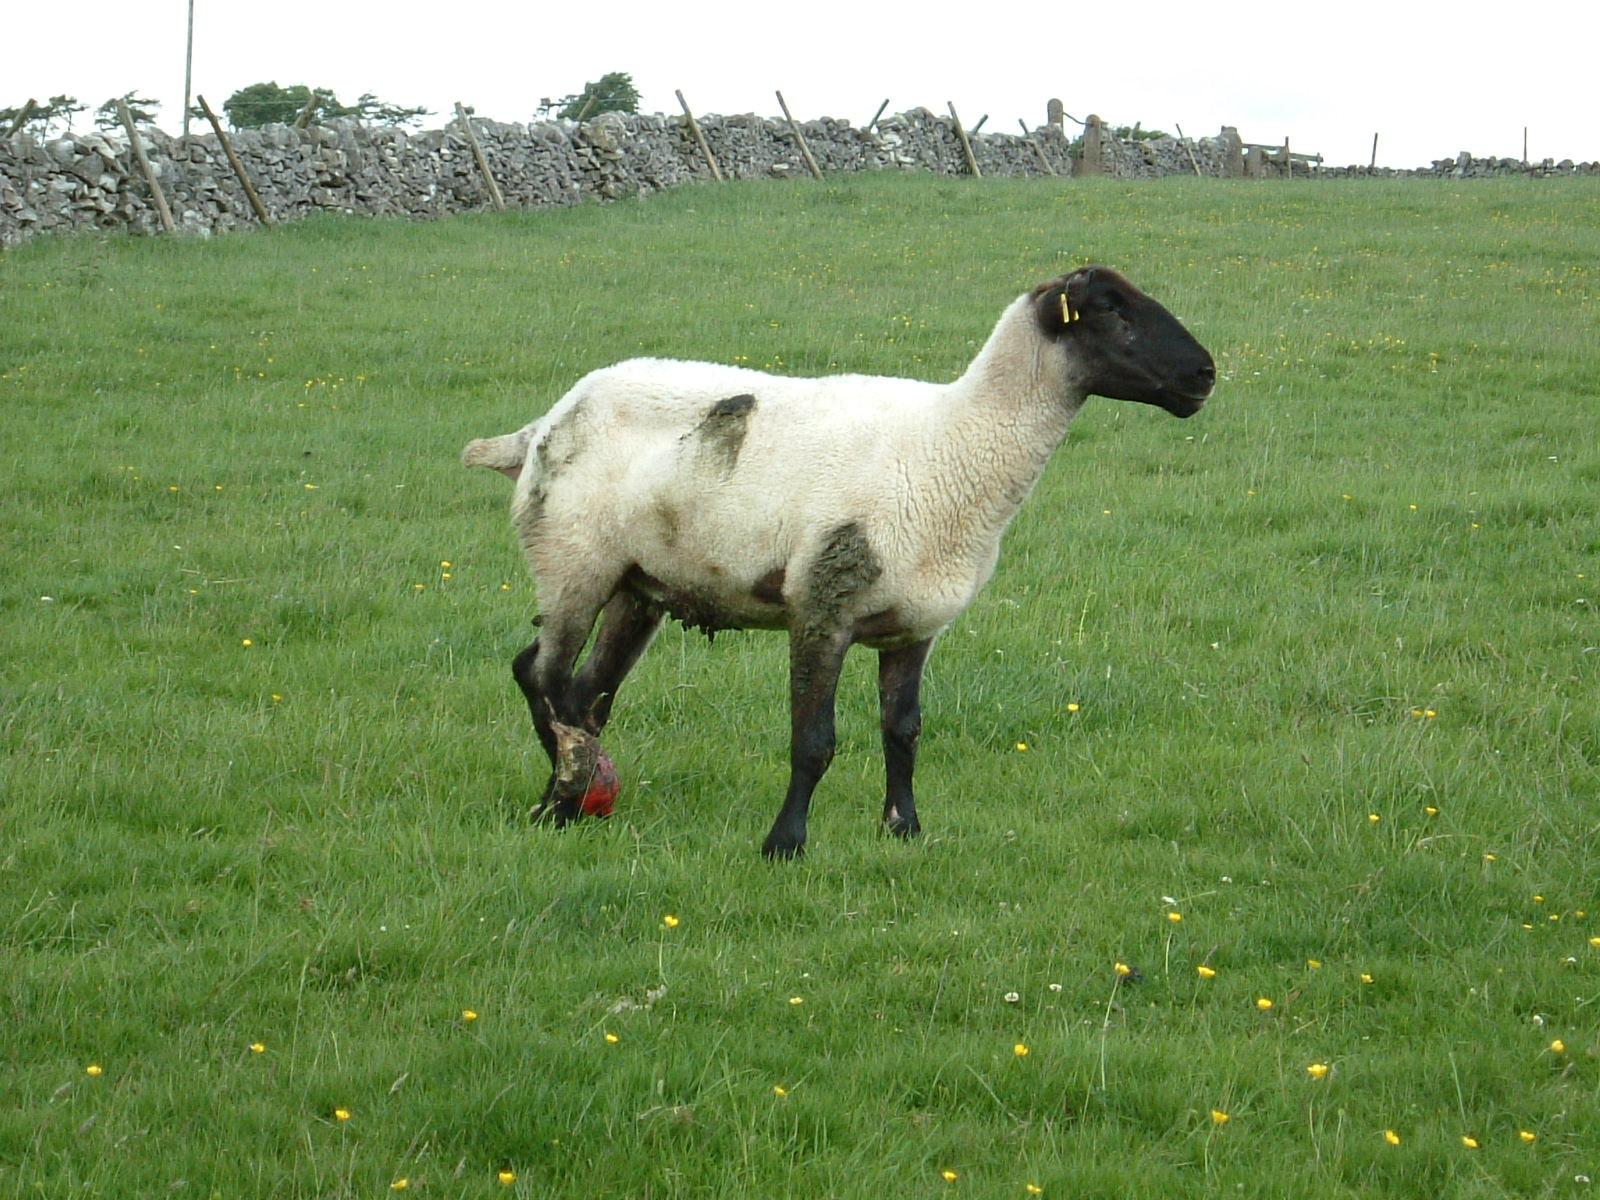 A sheep with an injured foot